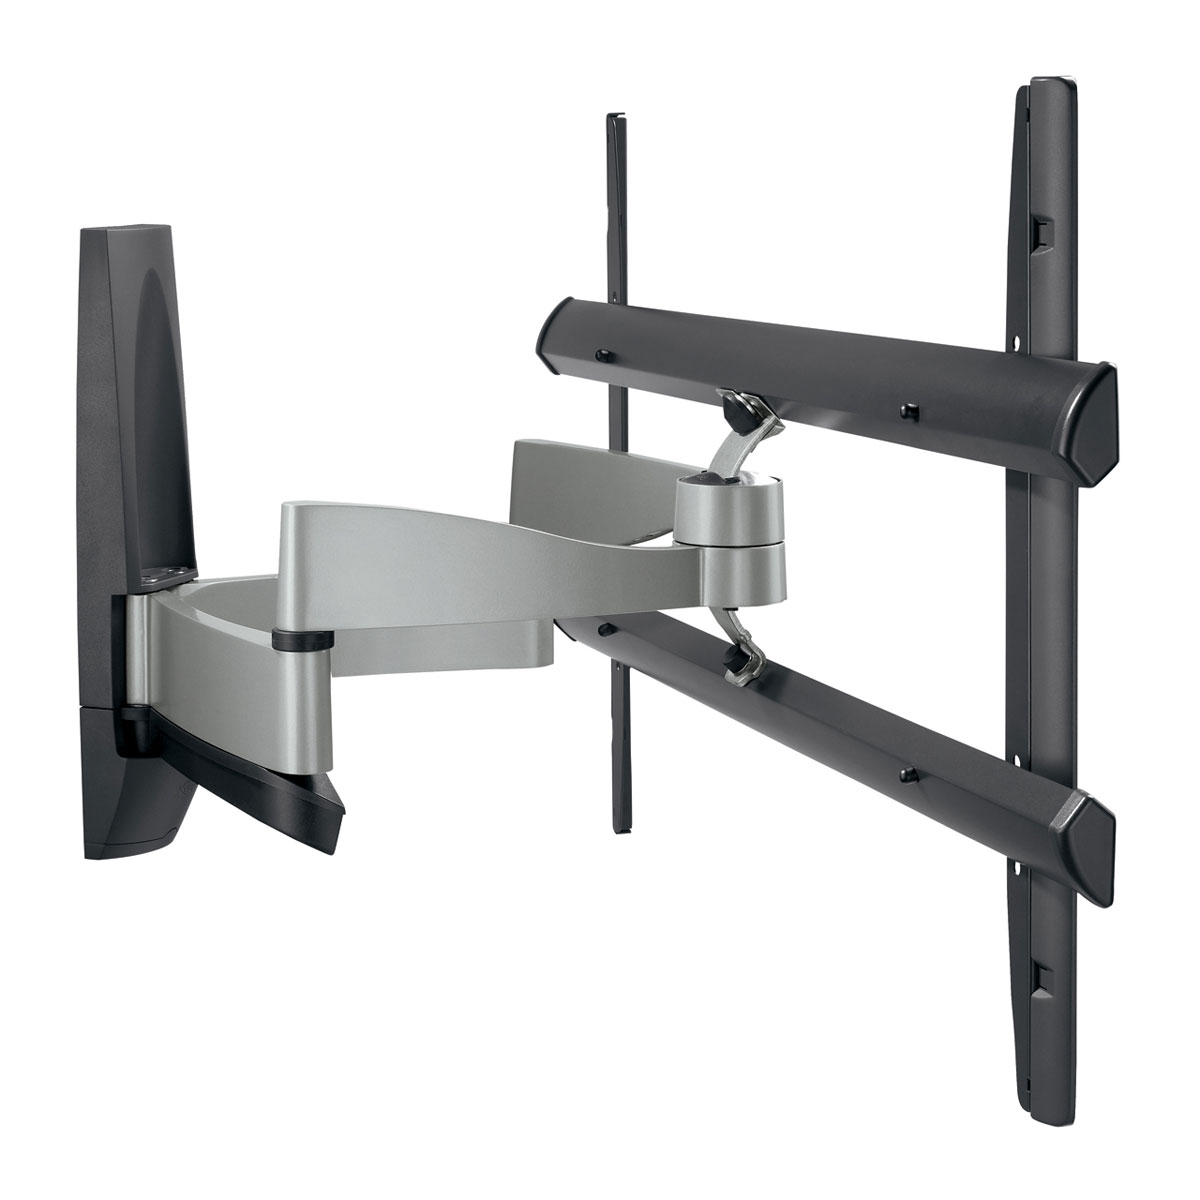 Vogel 39 s efw 6445 plus support mural tv vogel 39 s sur - Support tv mural orientable ...